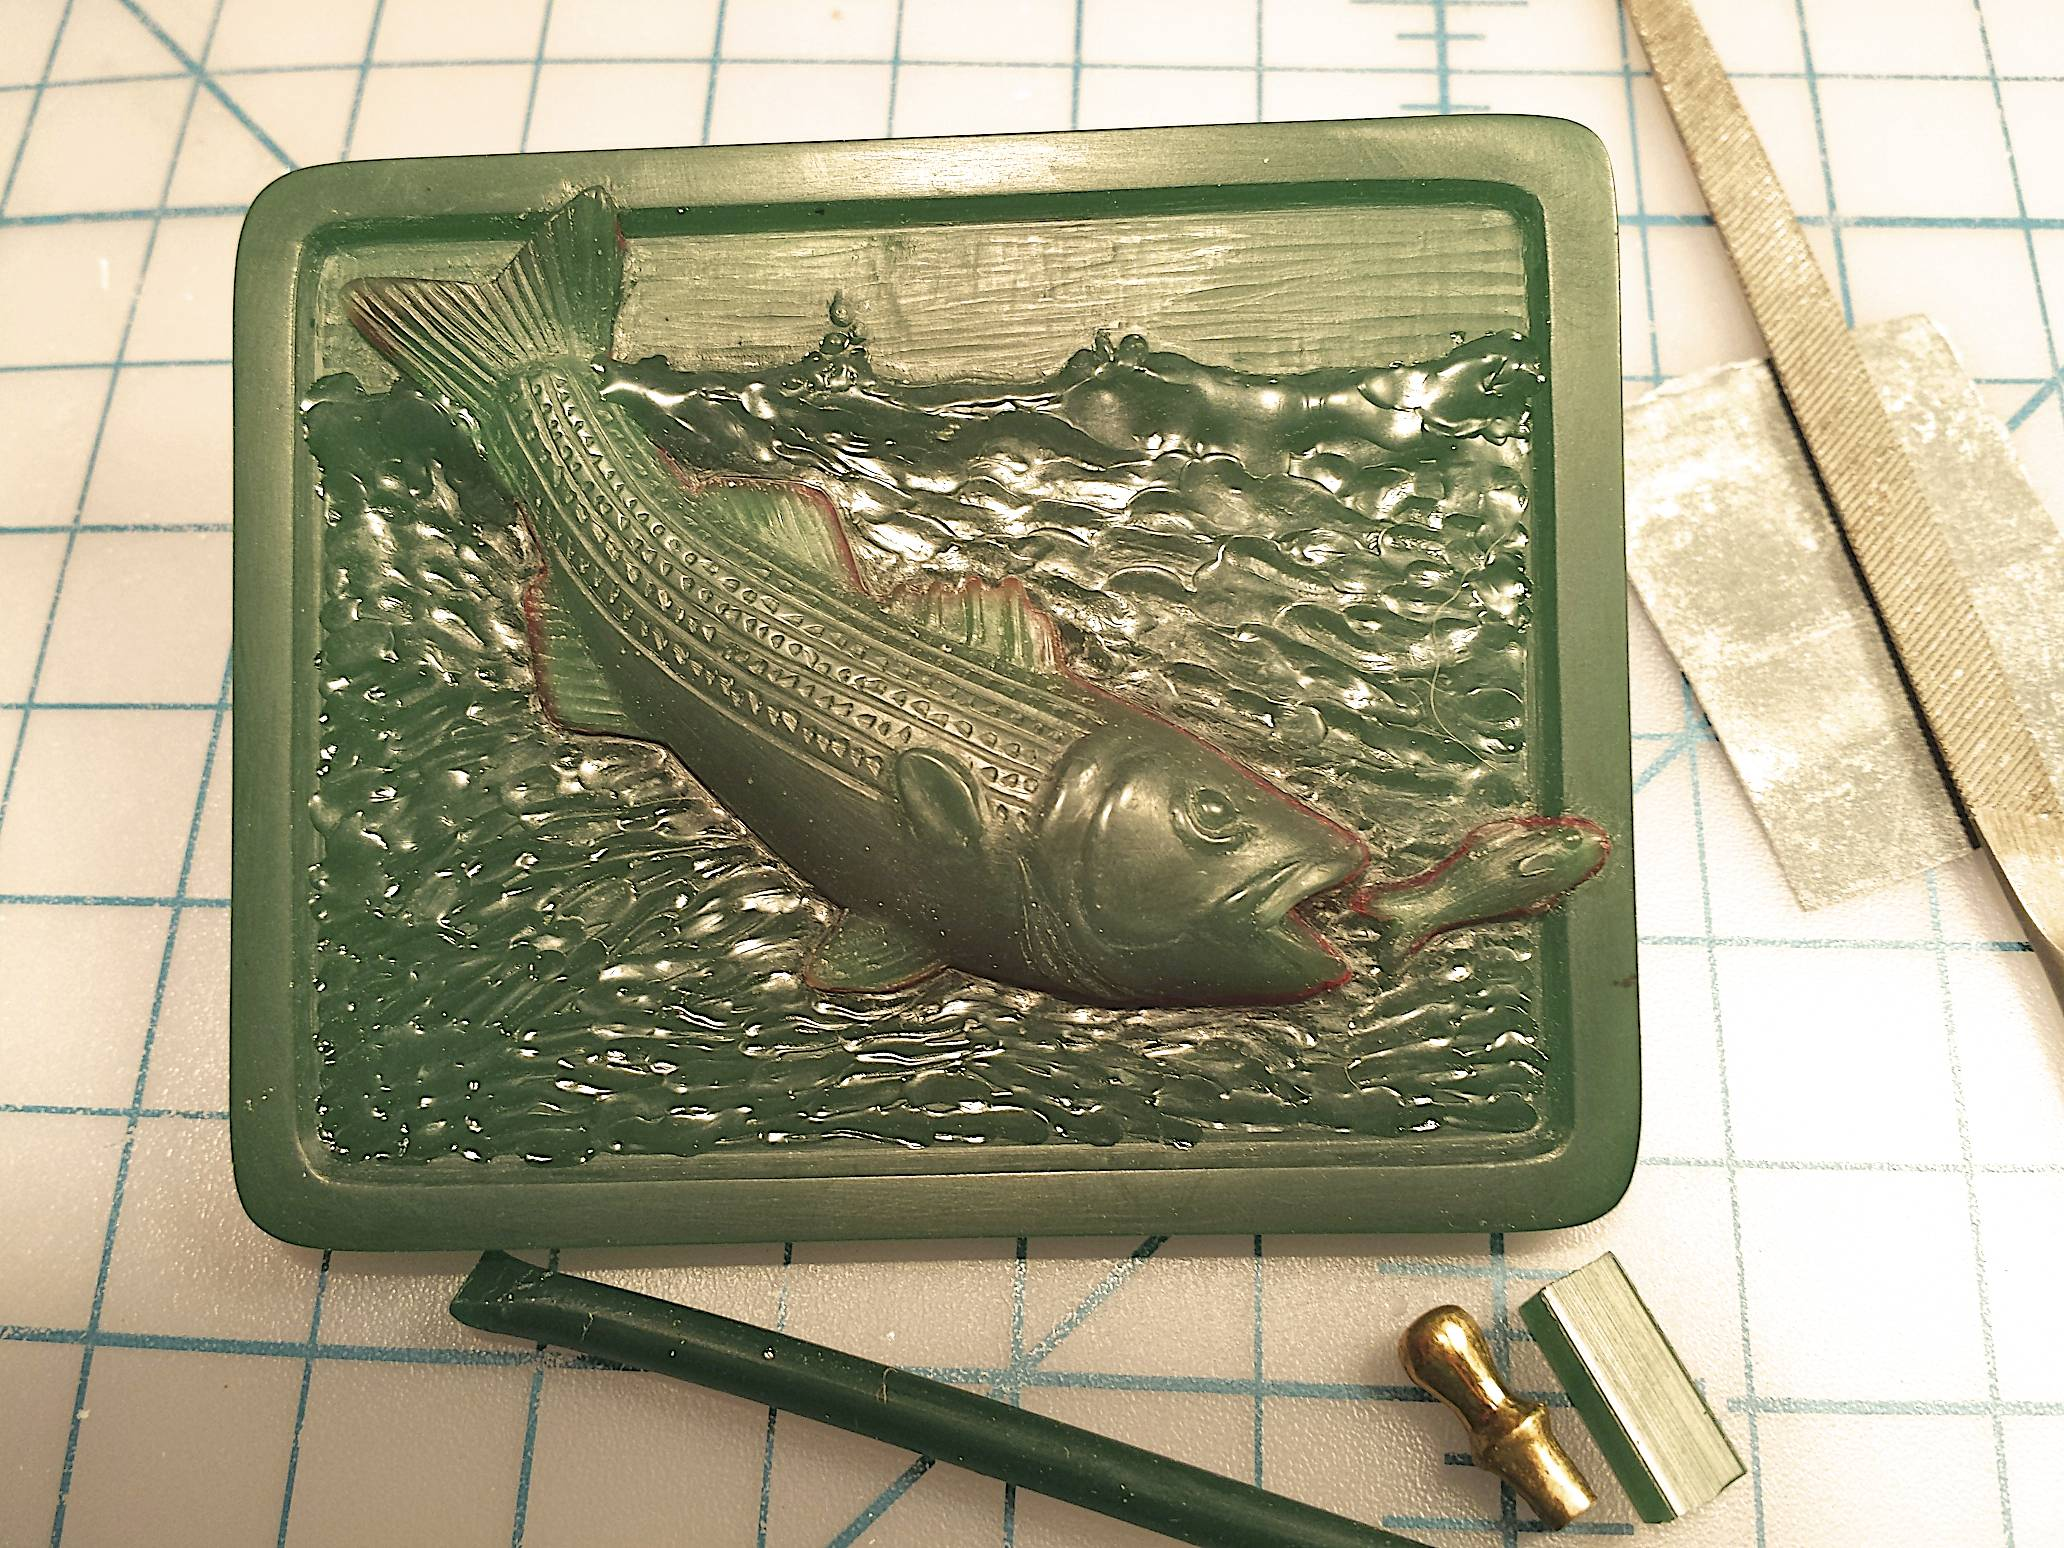 Adding the water,tops of the waves and the bait fish.